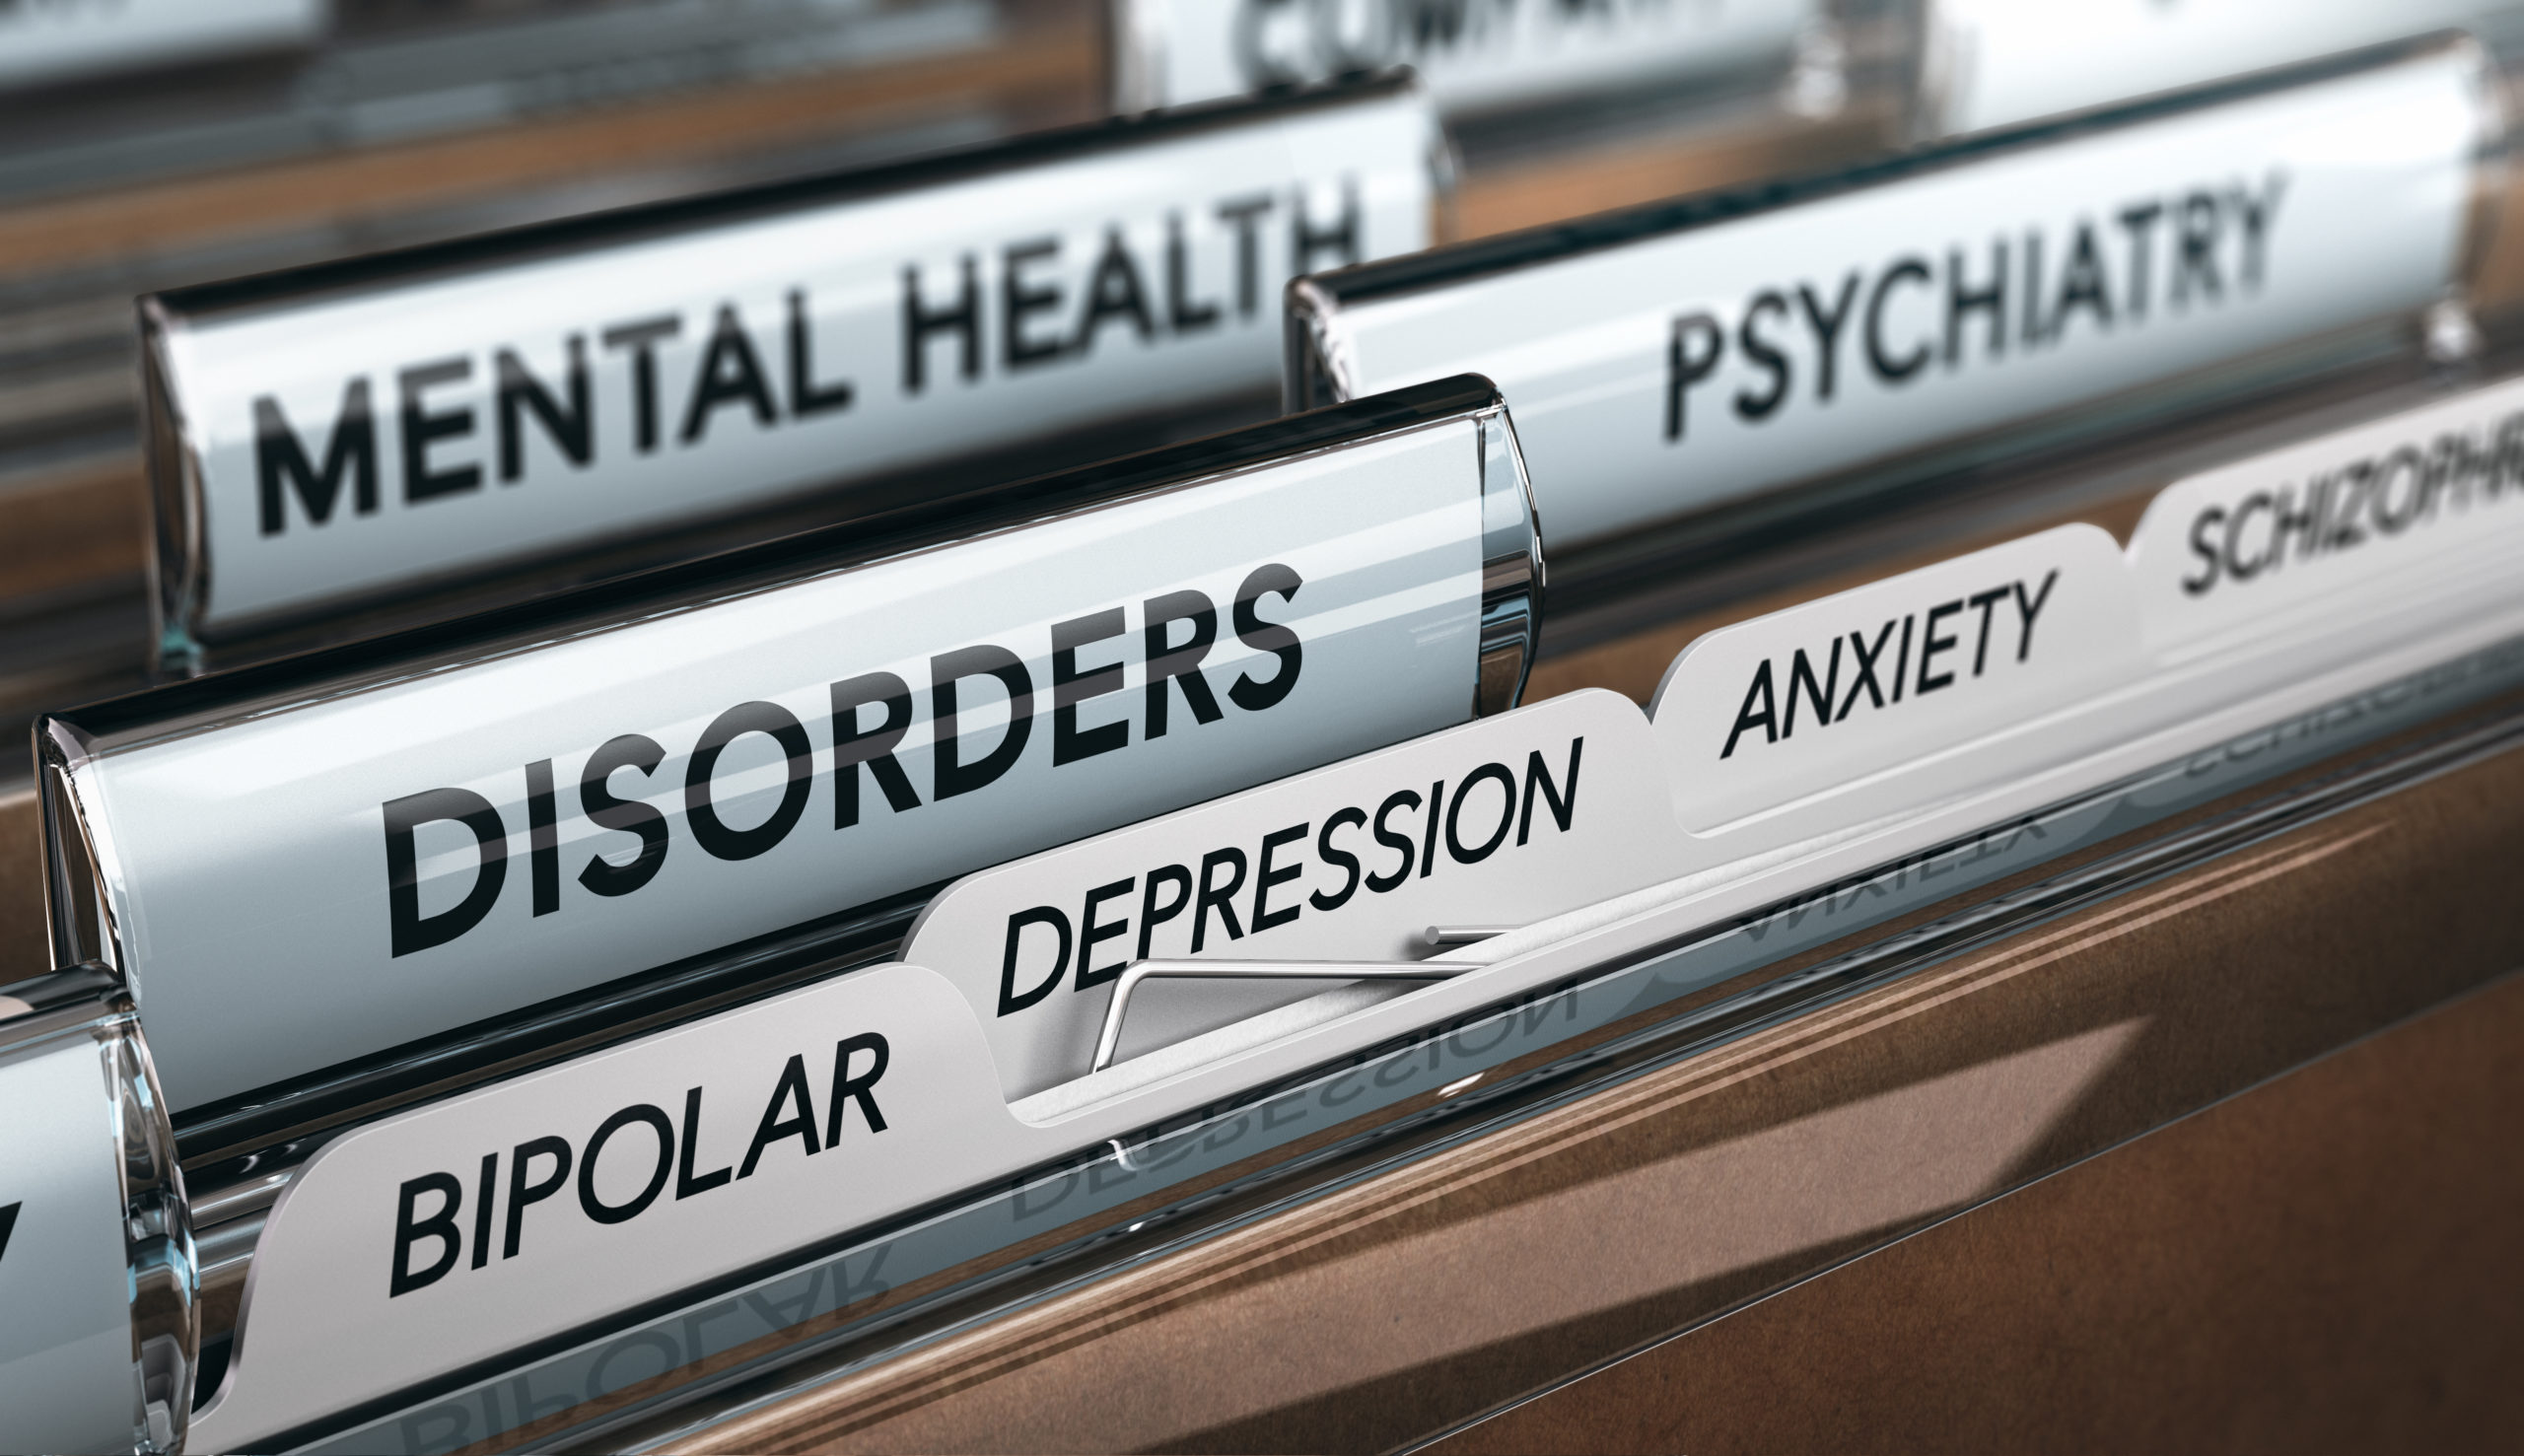 Psychiatric Outpatient Services